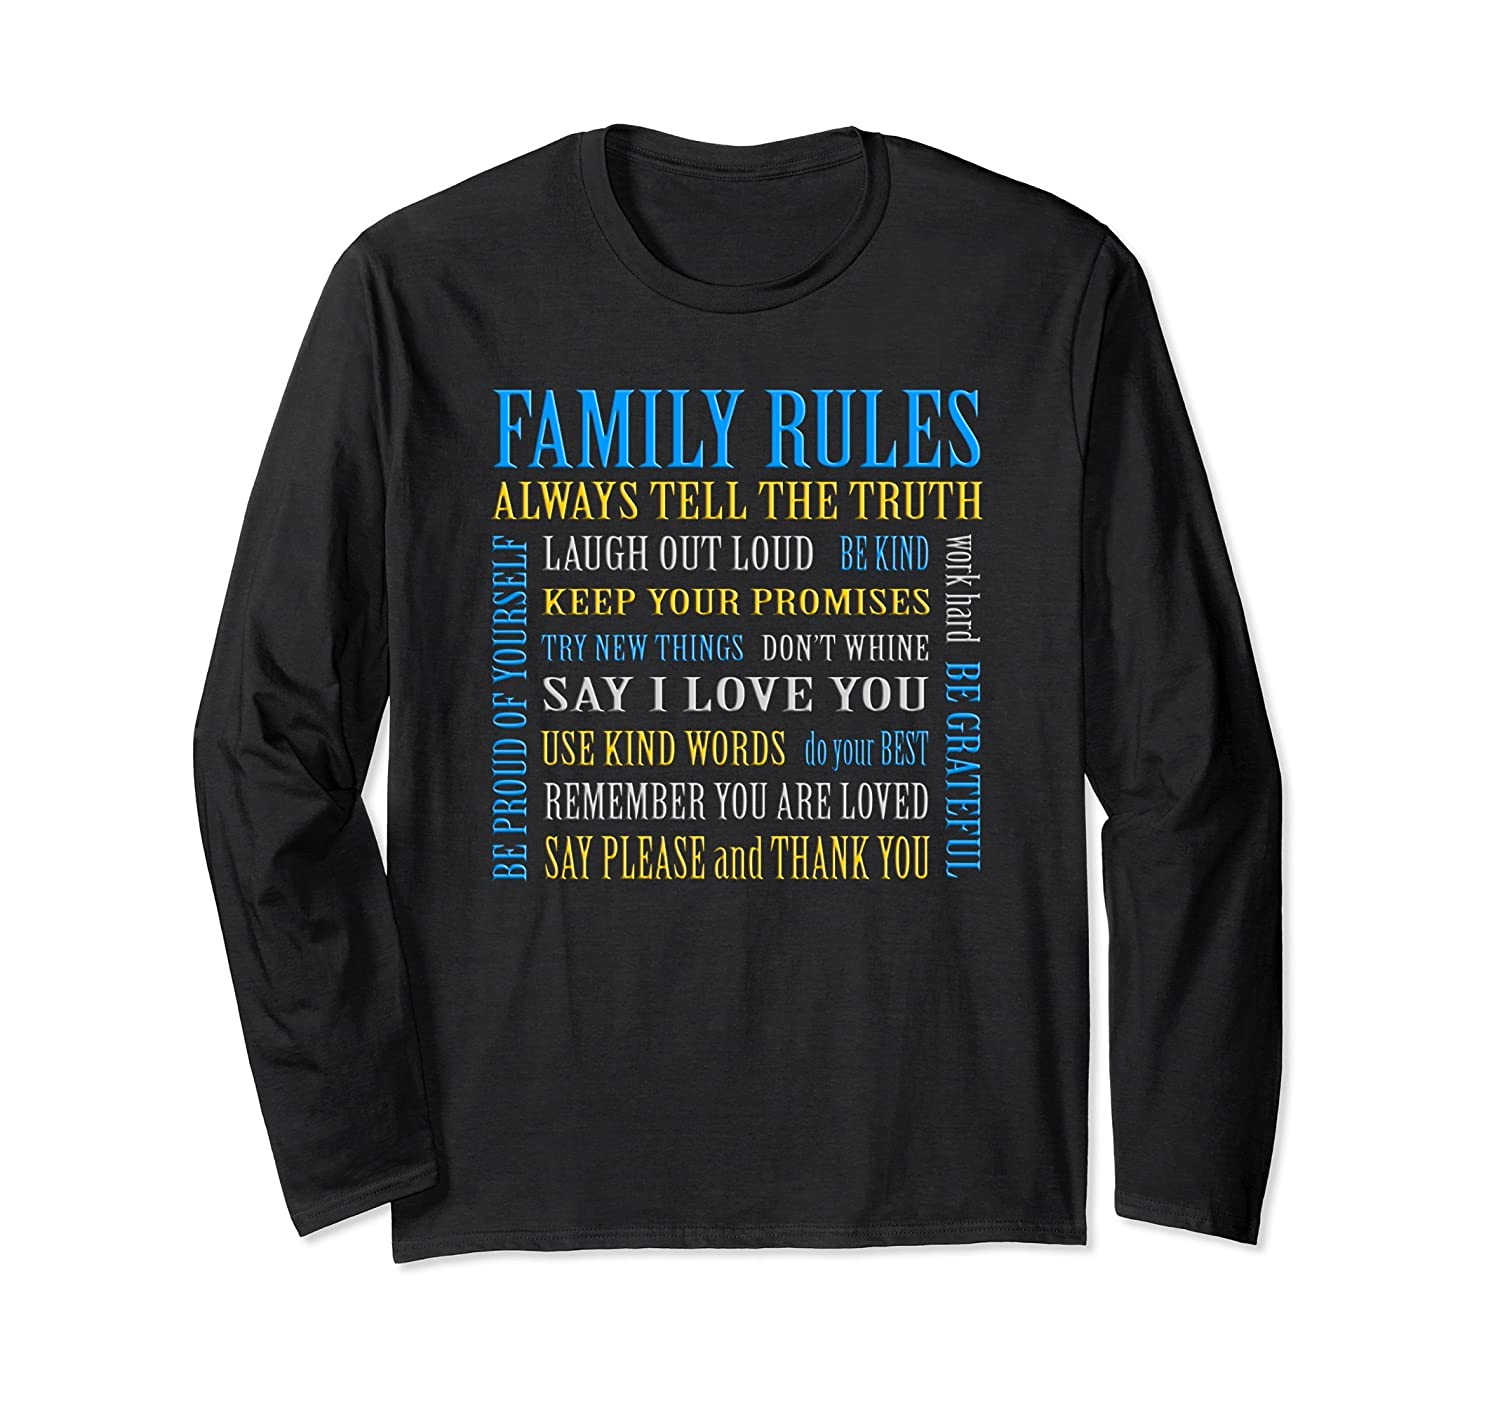 9e9c8b0ec Family Rules to Live By Long Sleeve T-Shirt Design Sayings-alottee ...